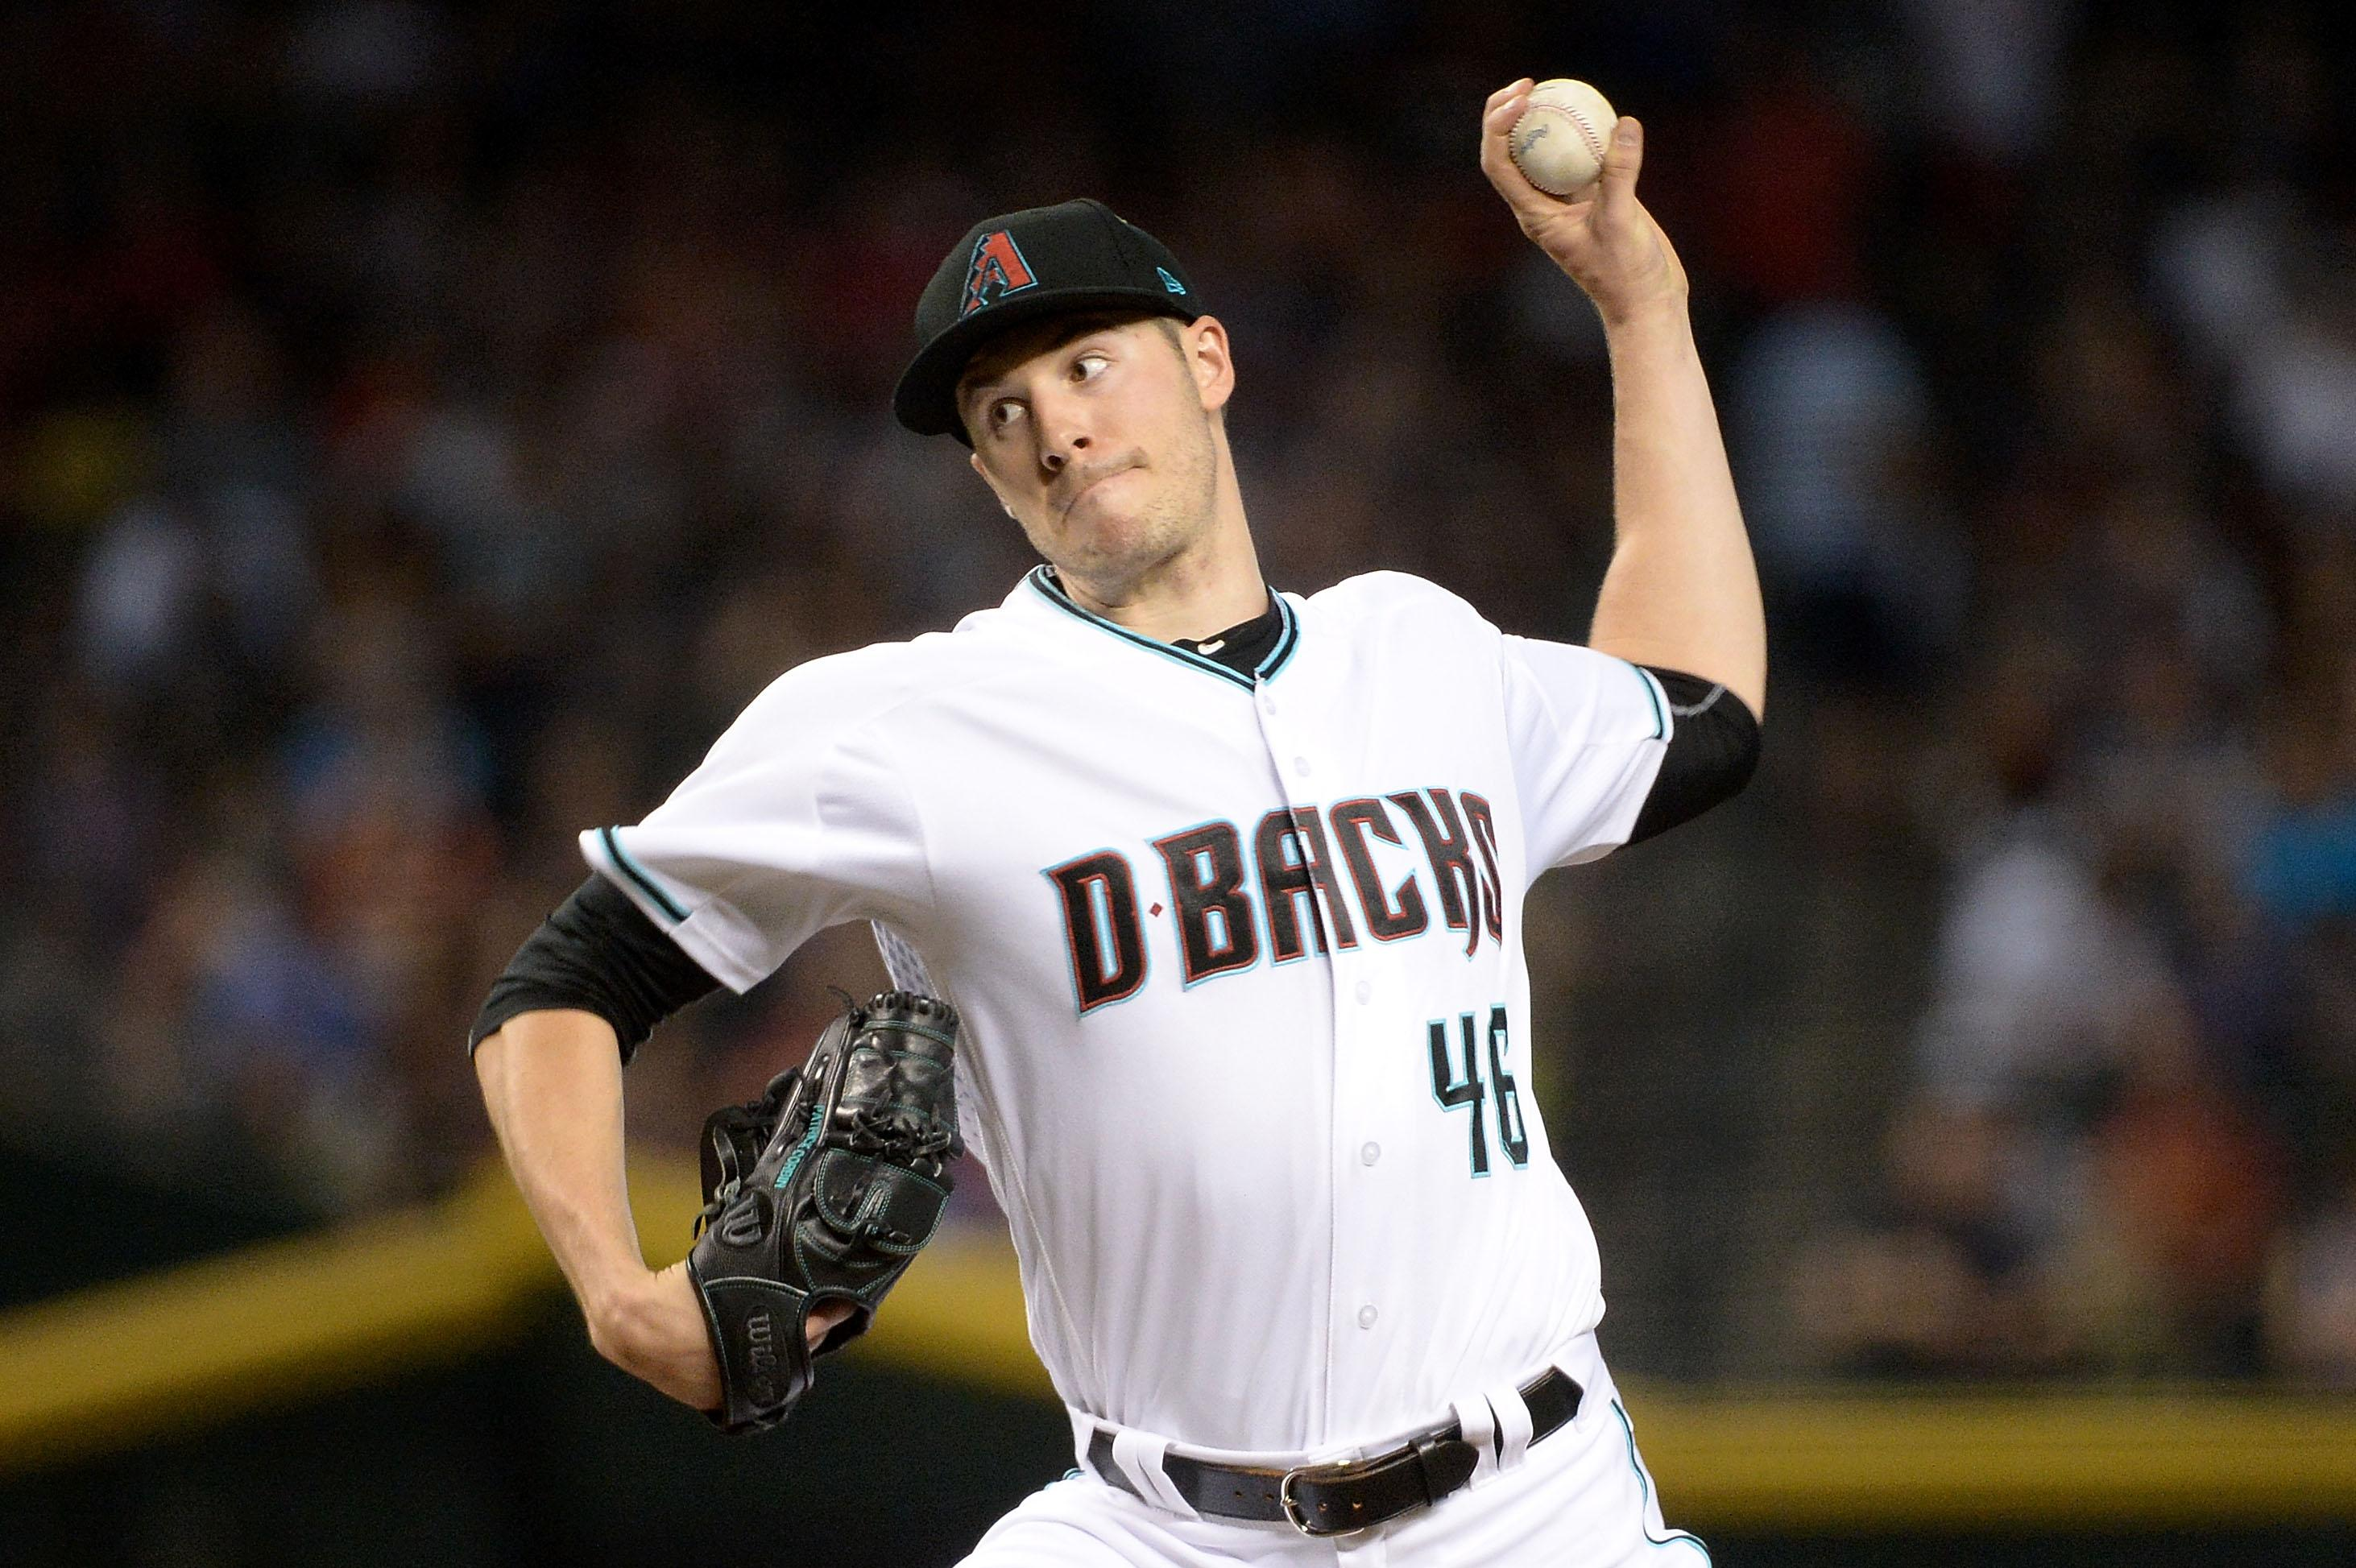 MLB Rumors: Yankees, Phillies Or Nationals Expected To Sign Patrick Corbin Soon